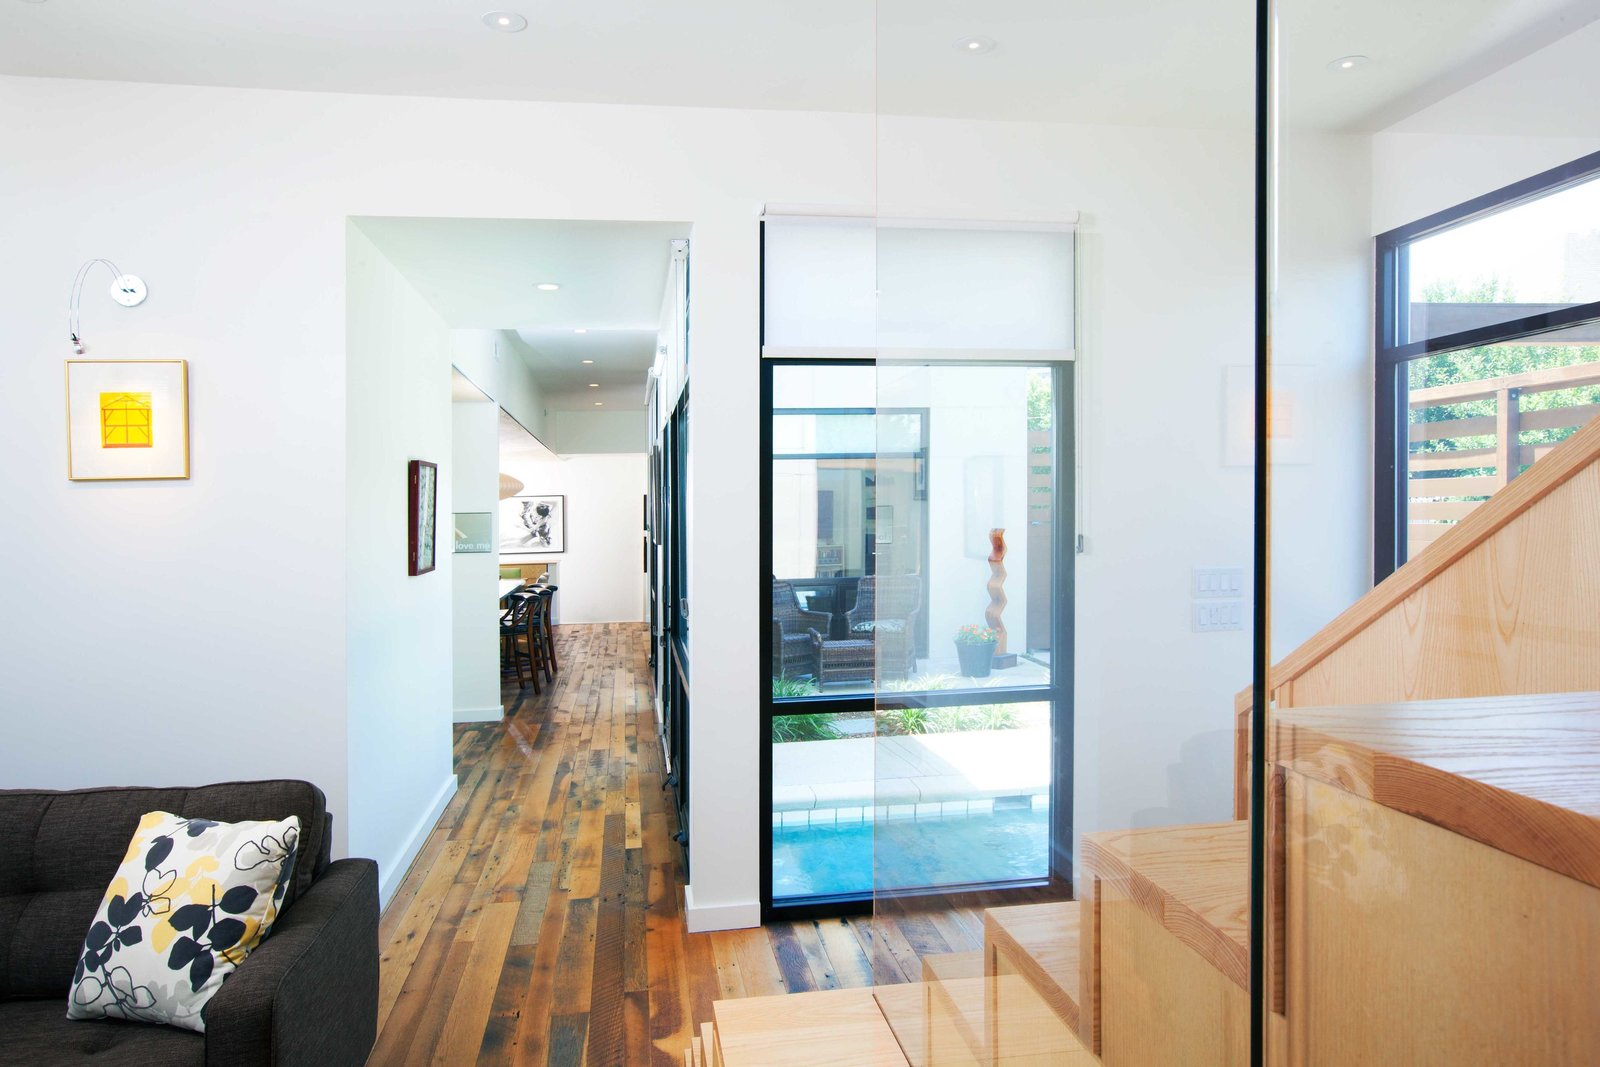 A Zen-like plunge pool situates itself at the corner of the court, visible from many areas of the house and welcomes guests along their entry journey. Tagged: Plunge Pools, Tubs, Shower, Medium Hardwood Floor, Staircase, Glass Railing, and Wood Tread.  City Cottage by ONE 10 STUDIO Architects